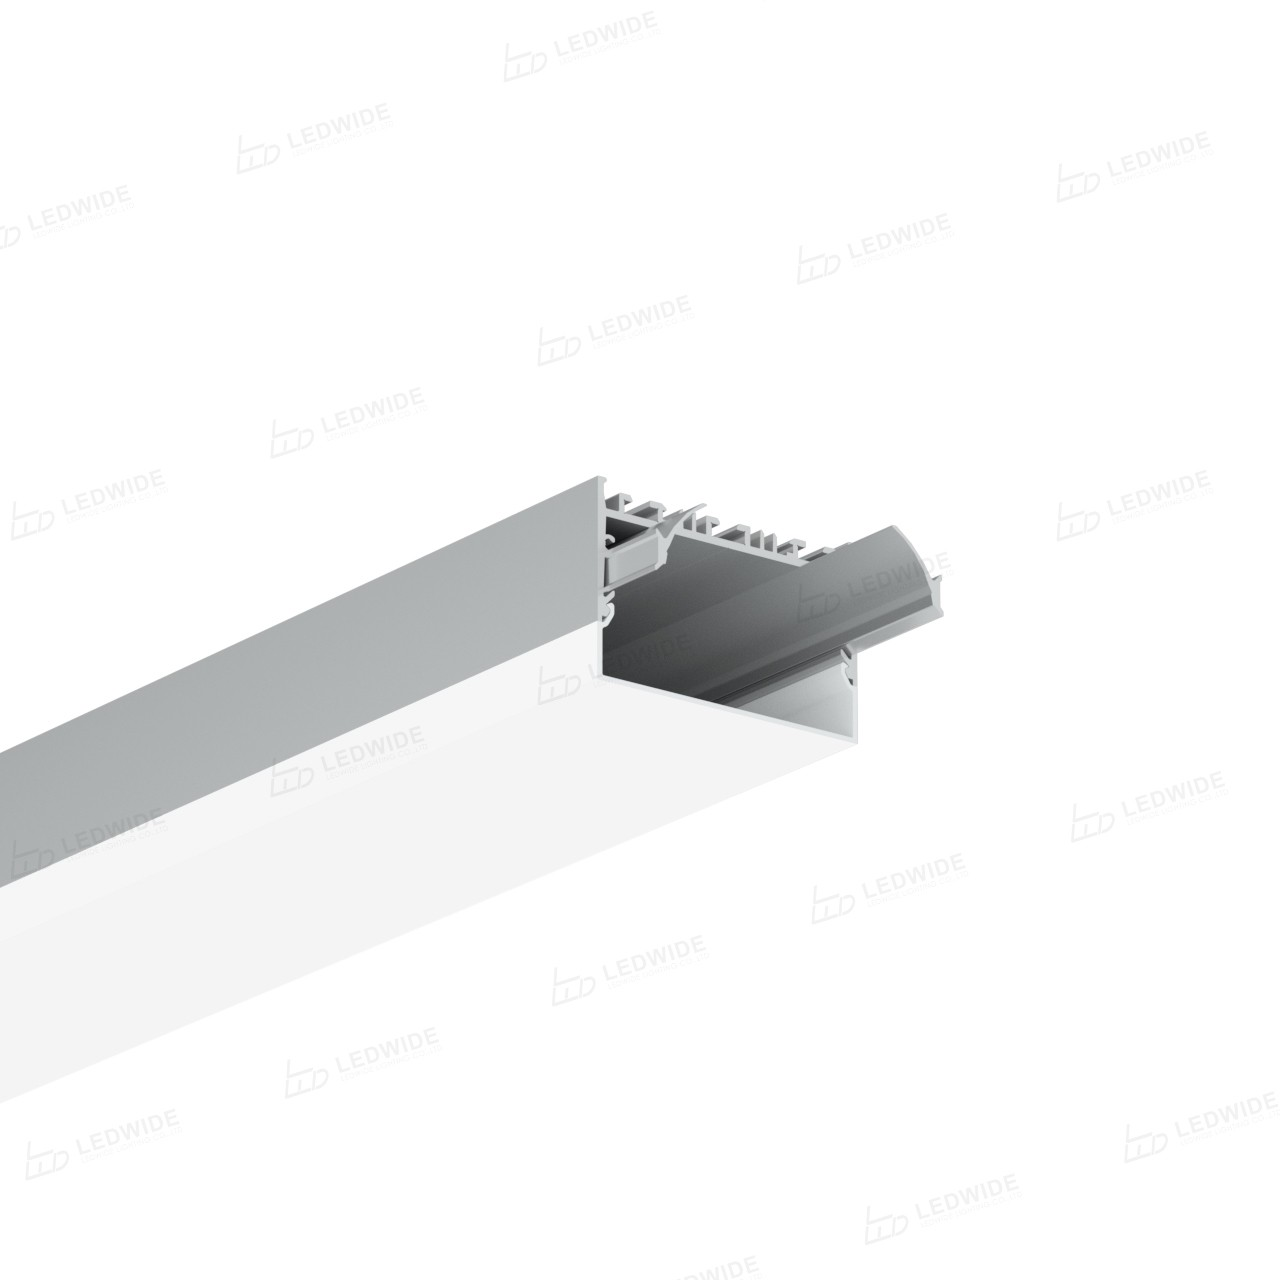 EU80 80mm U shaped square led profile 80x52.5mm Manufacturers, EU80 80mm U shaped square led profile 80x52.5mm Factory, Supply EU80 80mm U shaped square led profile 80x52.5mm